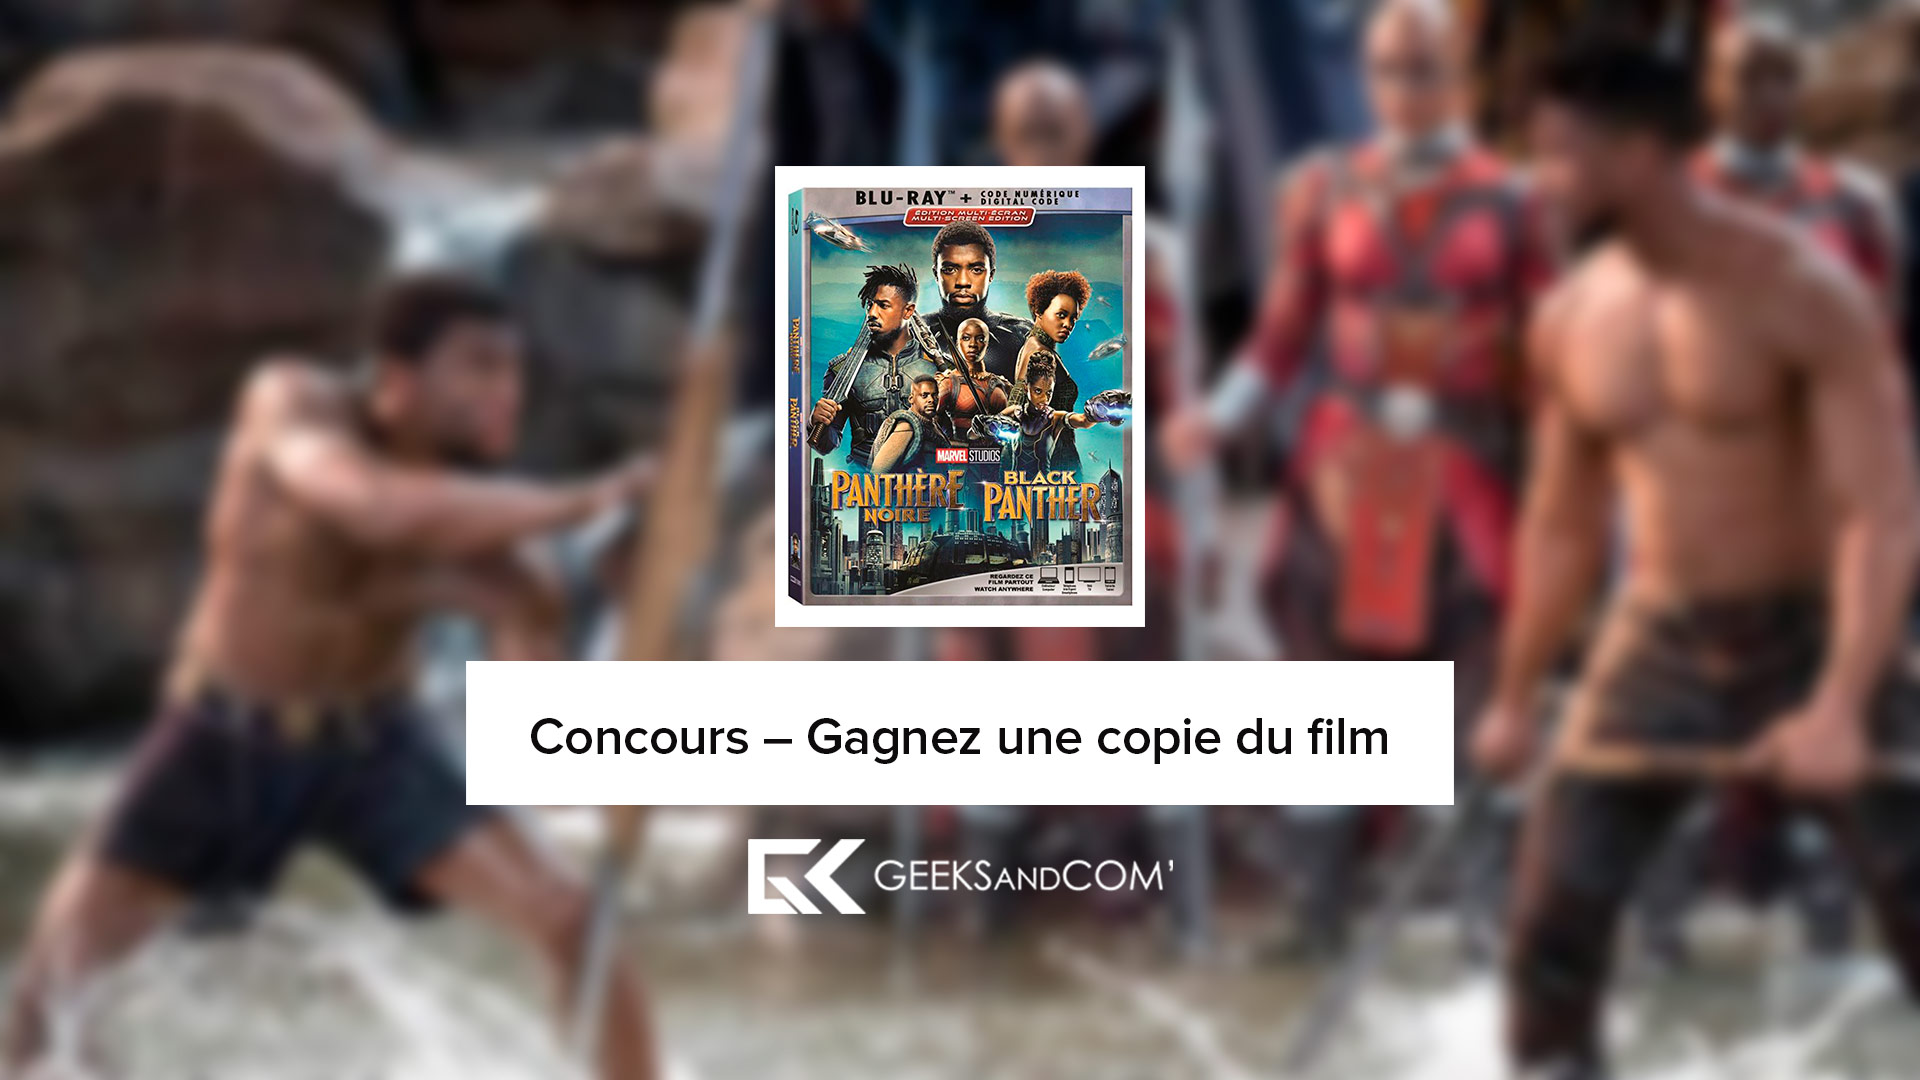 Black Panther - Concours